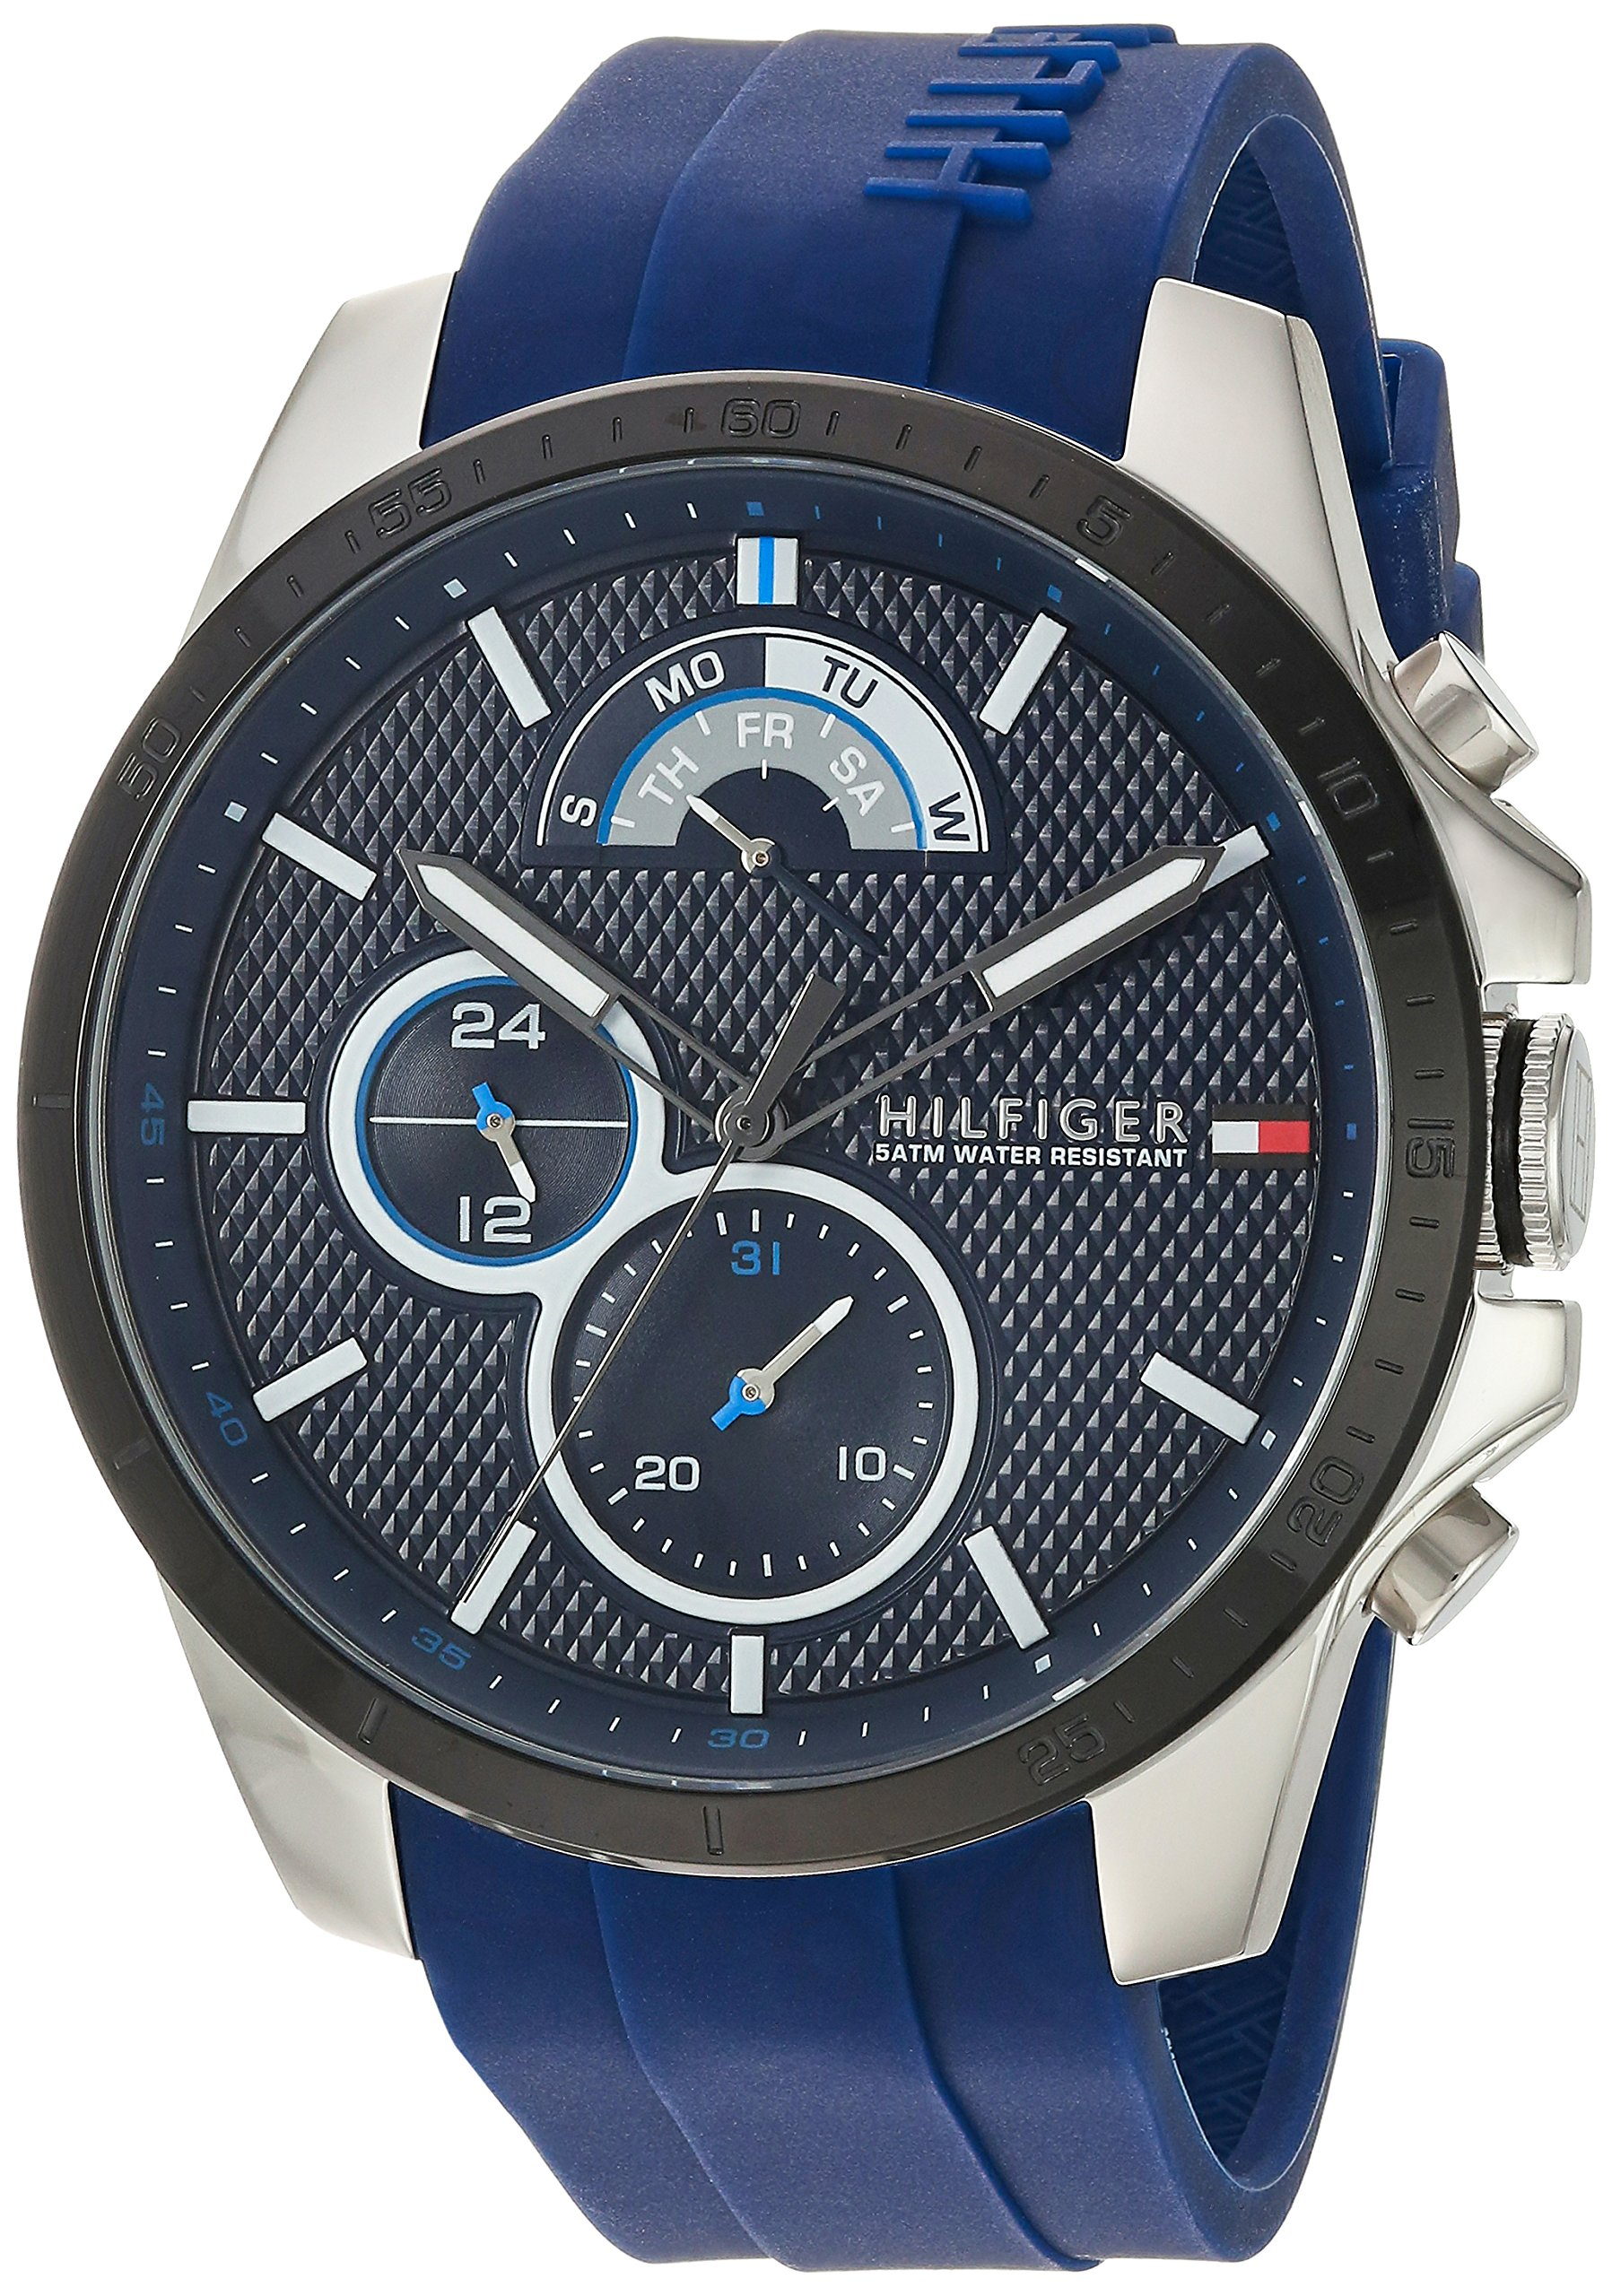 Tommy Hilfiger Men's 'COOL SPORT' Quartz Stainless Steel and Silicone Casual Watch, Color:Blue (Model: 1791350) by Tommy Hilfiger (Image #1)